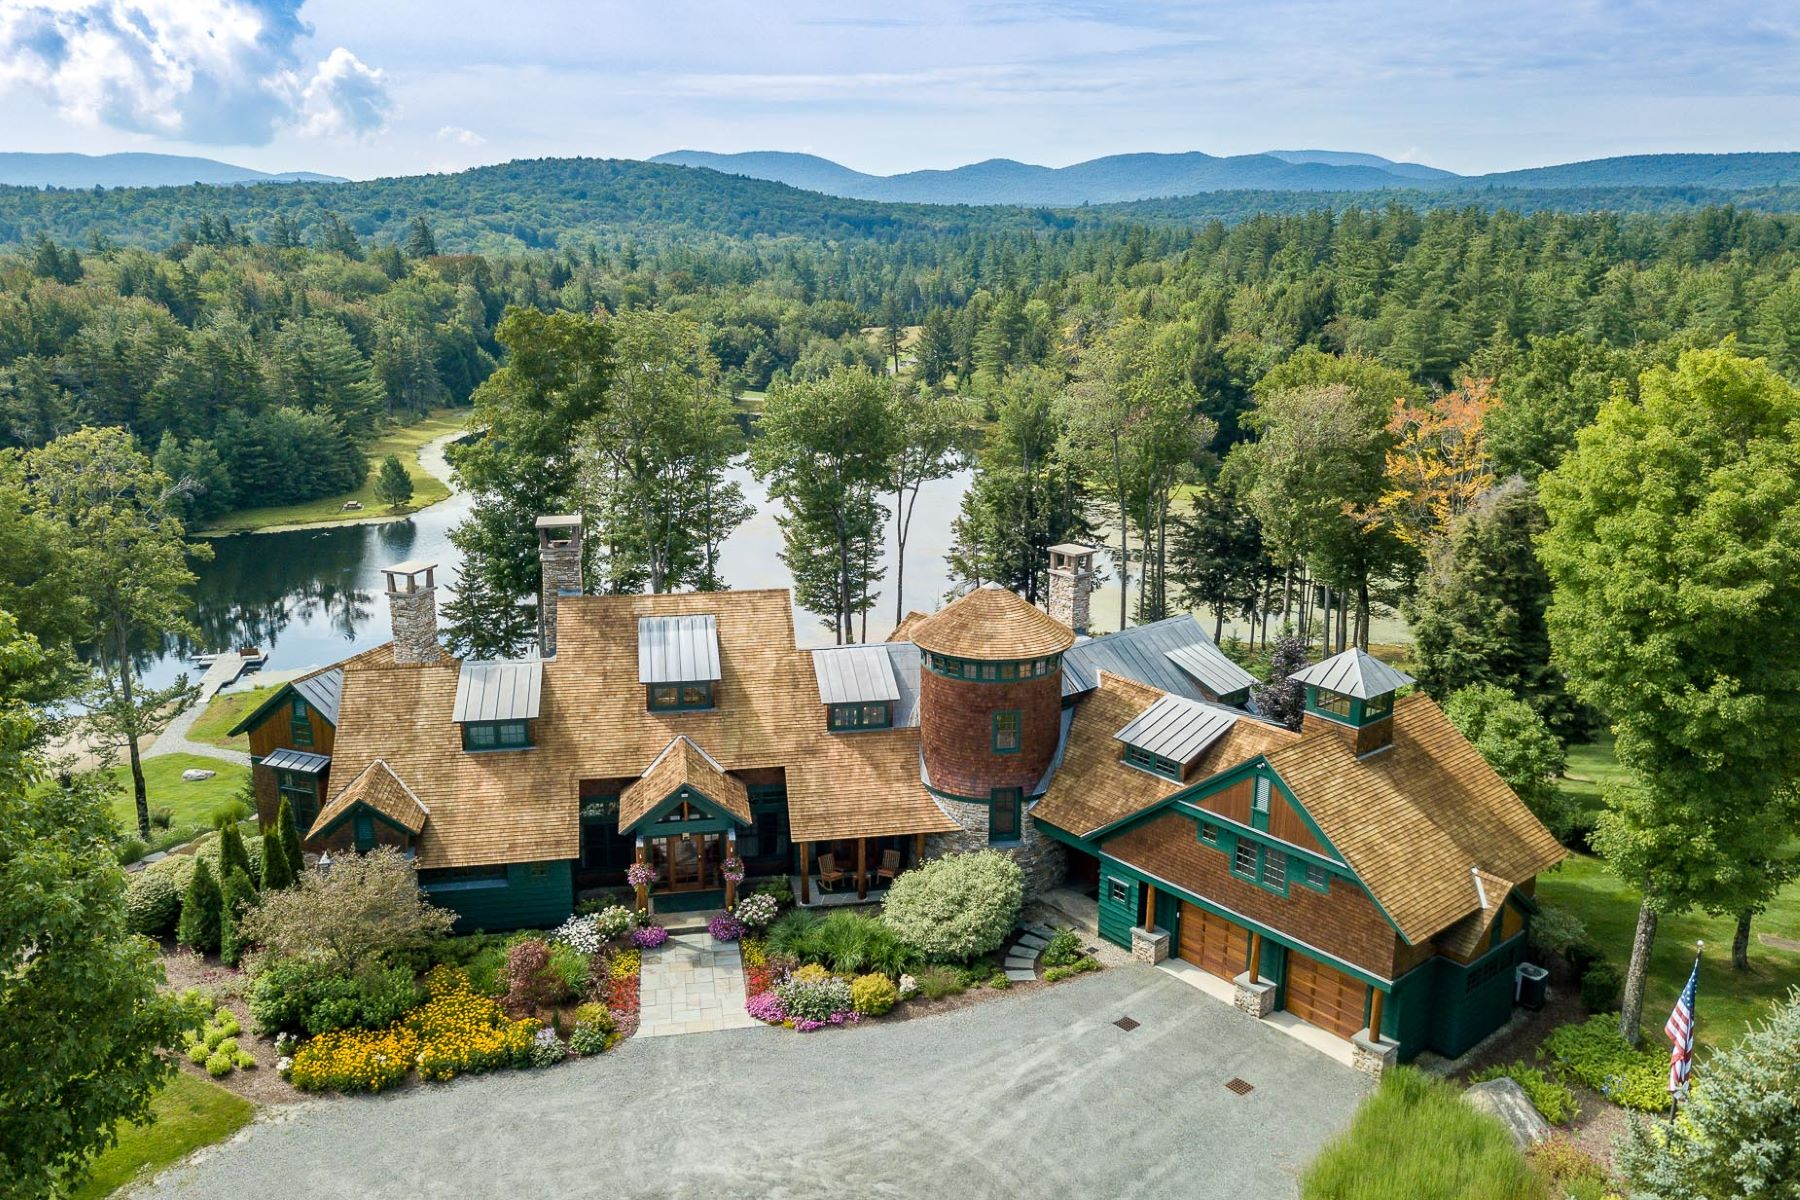 Single Family Home for Sale at 160 Acre Estate in Stratton Vermont 820 Mountain Rd Stratton, Vermont, 05155 United States